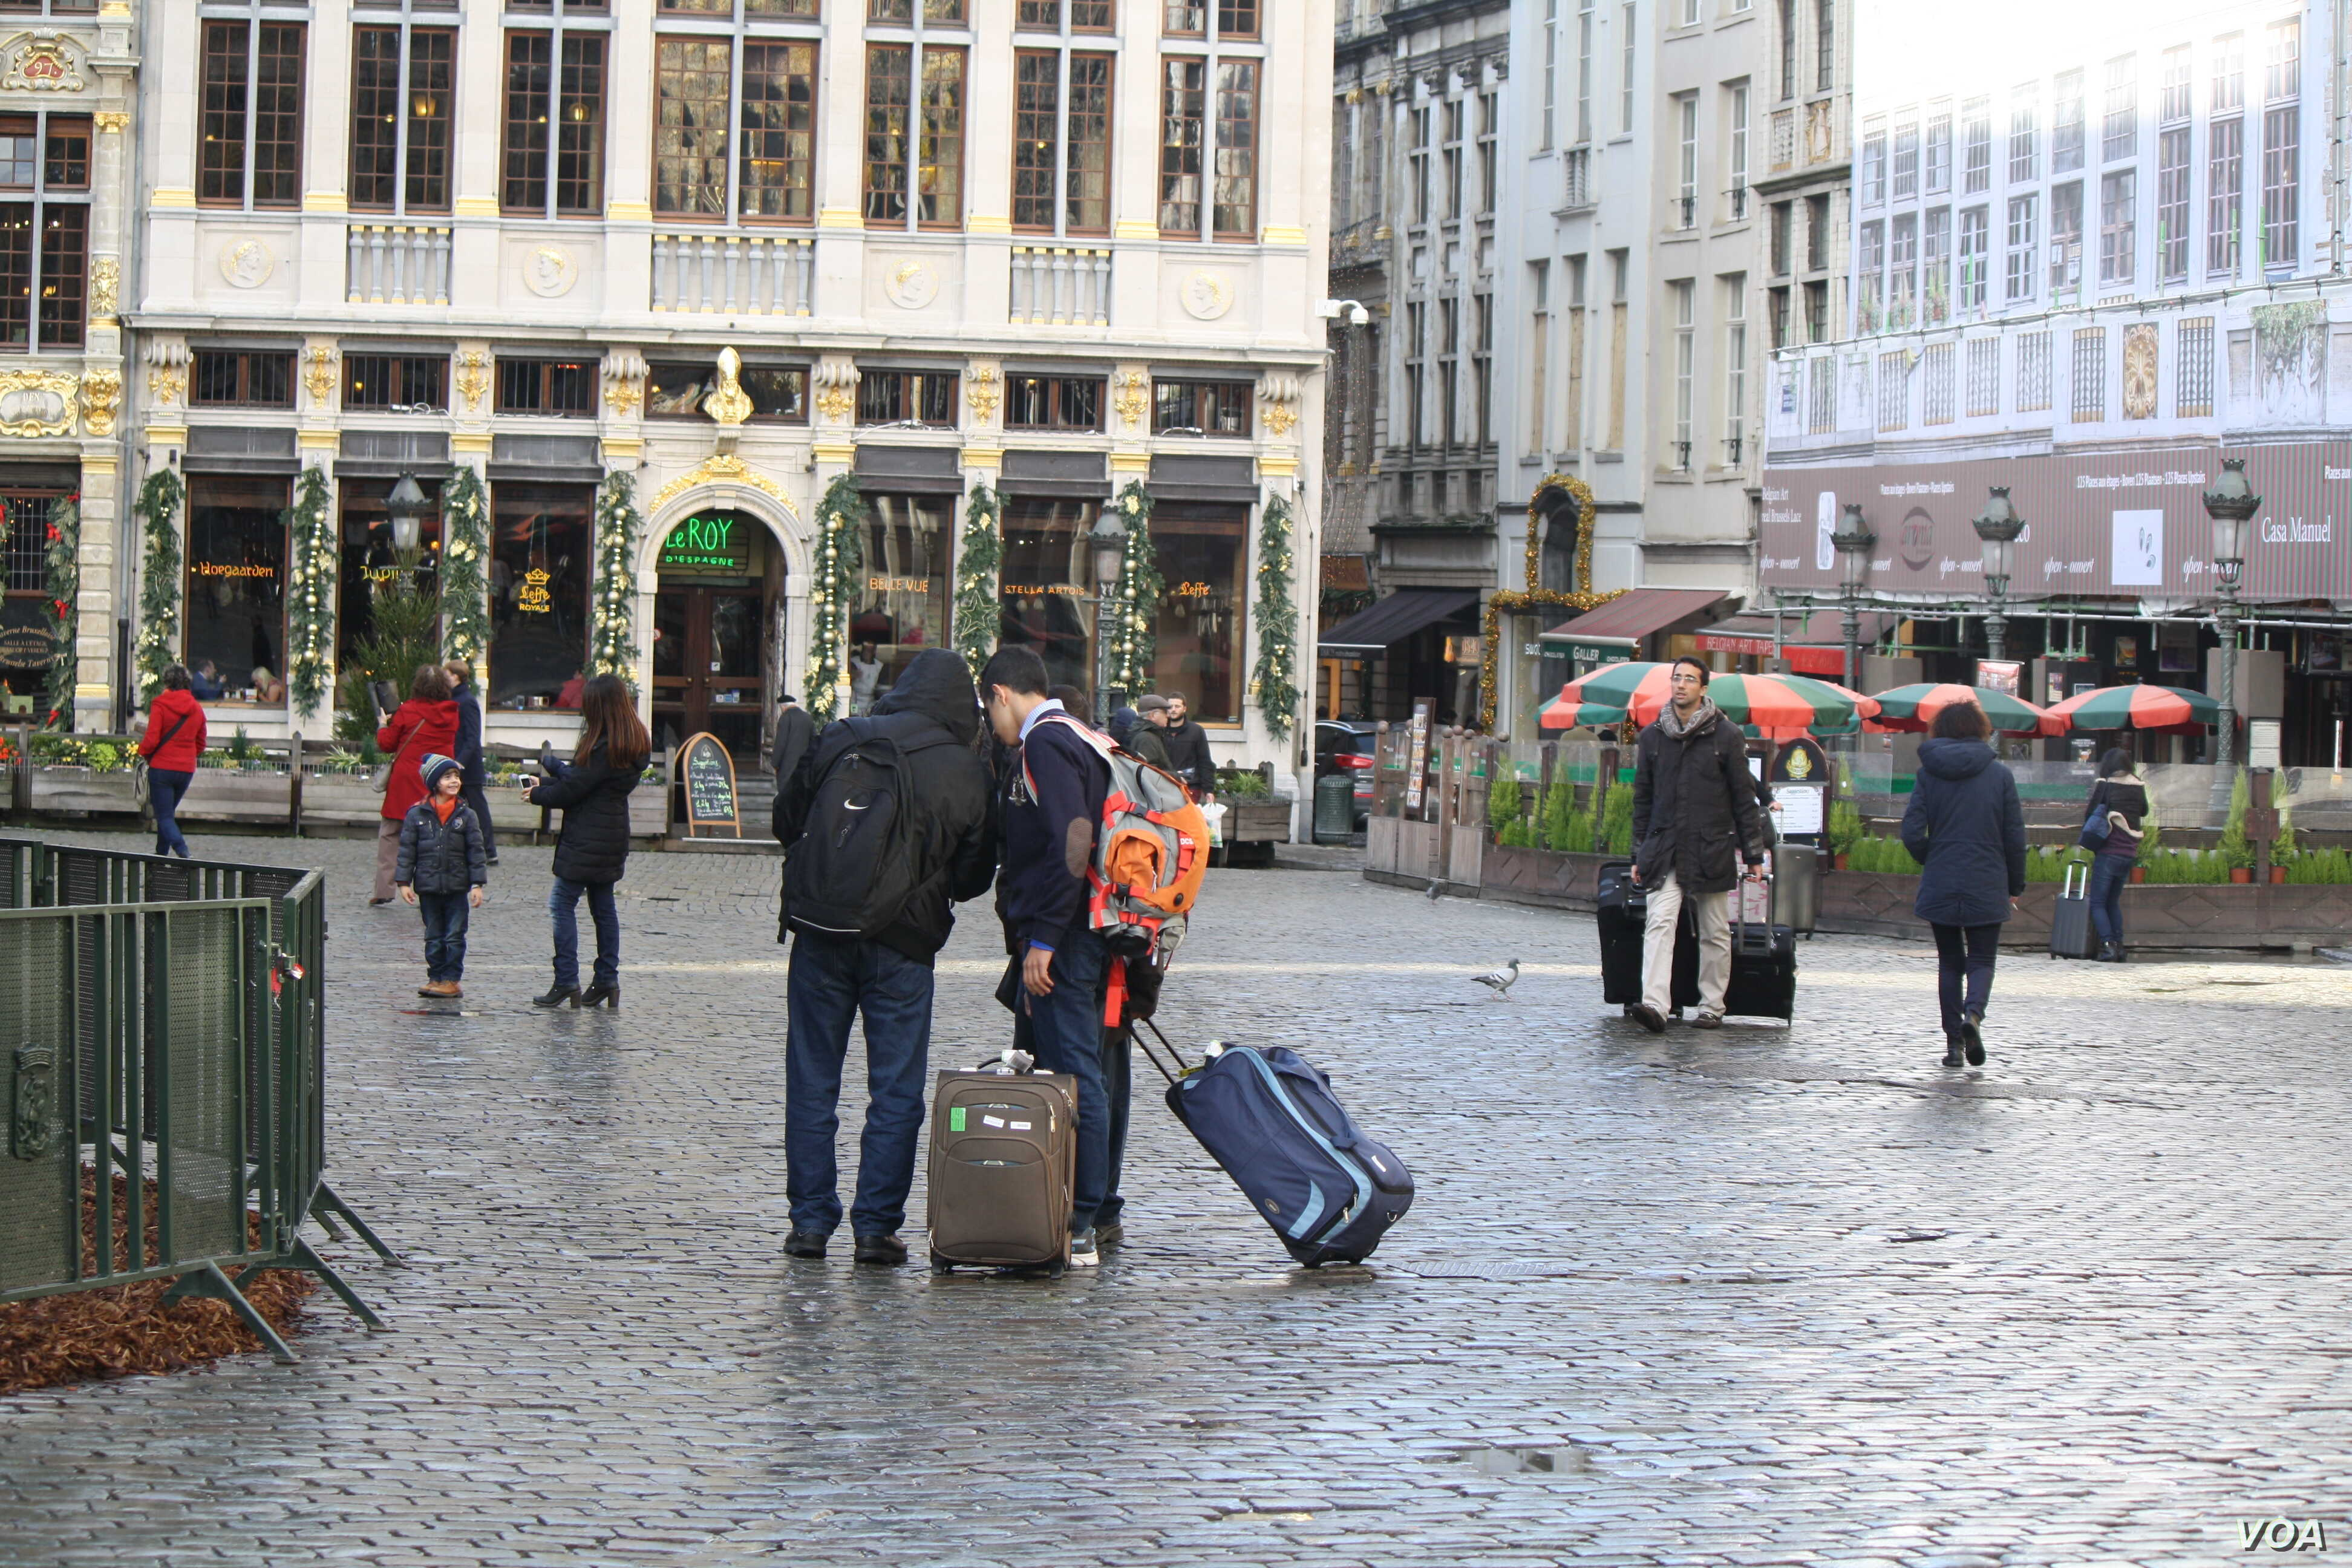 Some newly-arriving tourists on Wednesday, Nov. 25, 2015, said they had planned their trips before the terrorist threat in Brussels and even as they take in the beauty of the city, they are unsure if they should have come.  (Heather Murdock/VOA)